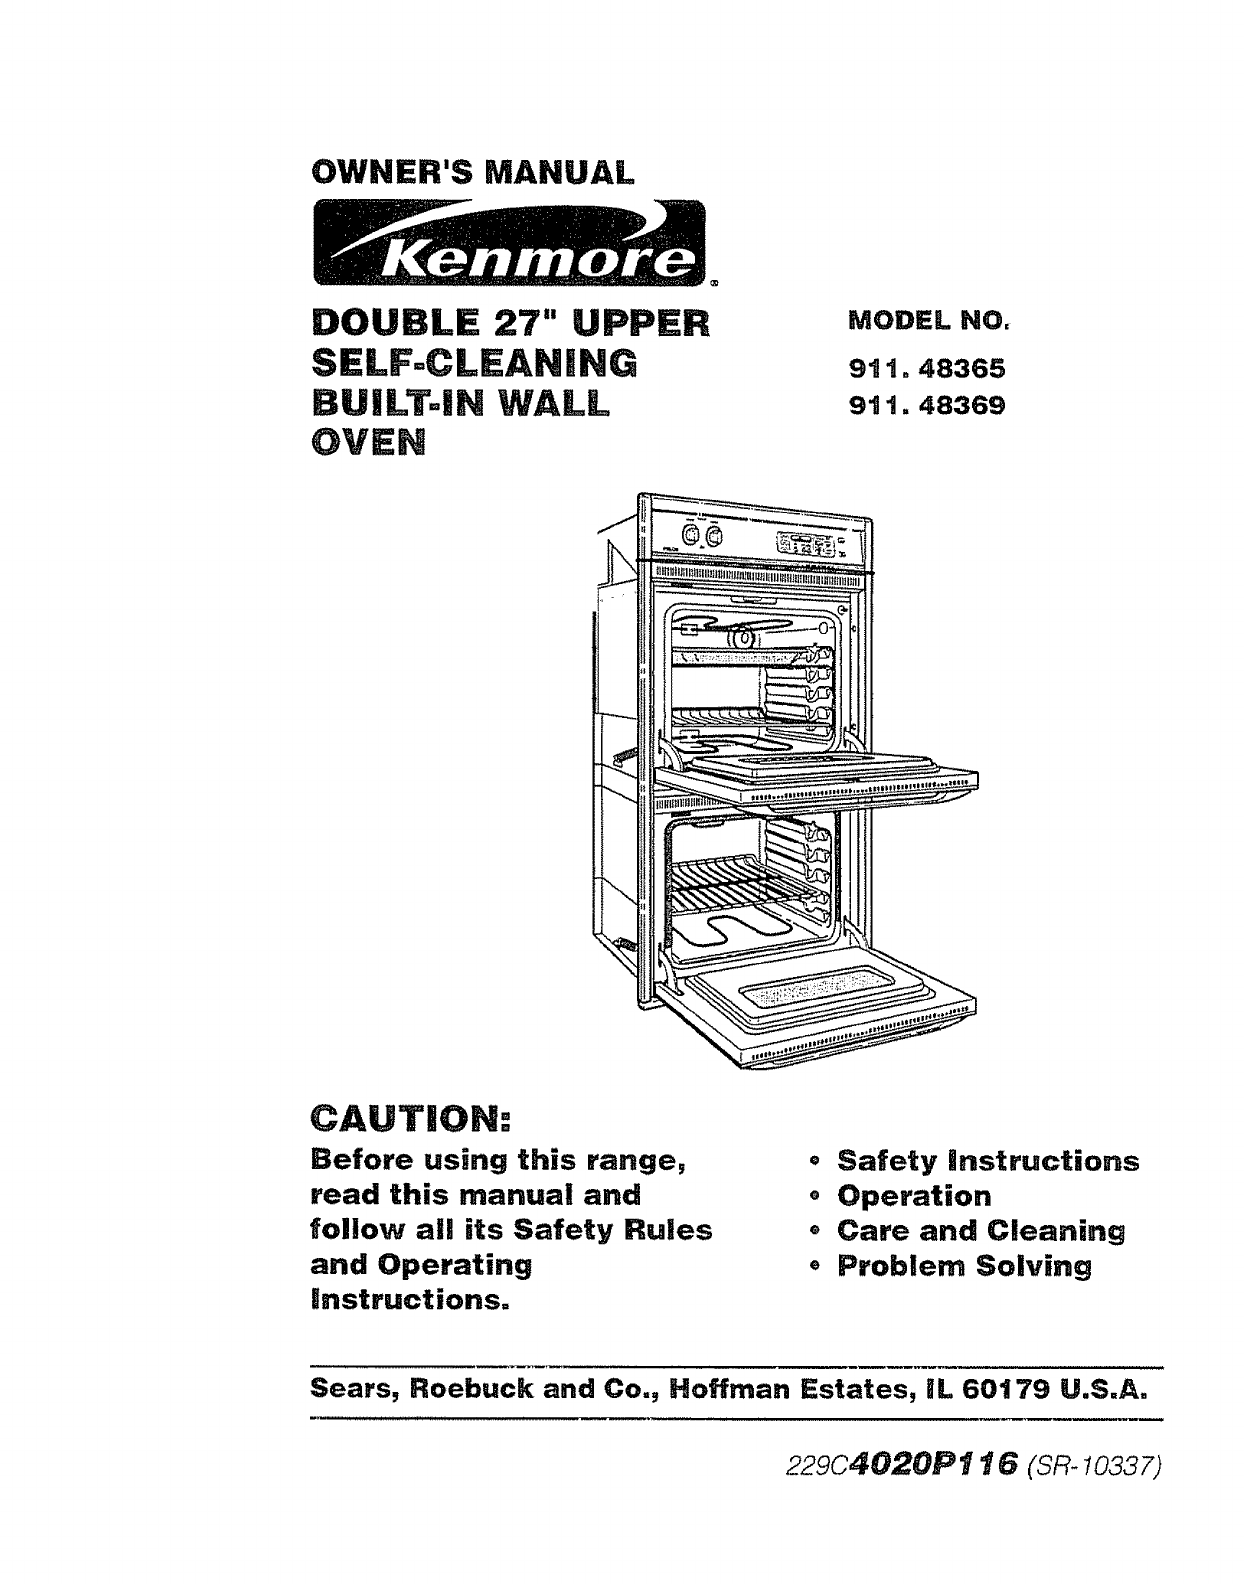 Kenmore 91148365791 User Manual 27 Electric Built In Double Oven Wiring Diagram Sears Manuals And Guides L0902390